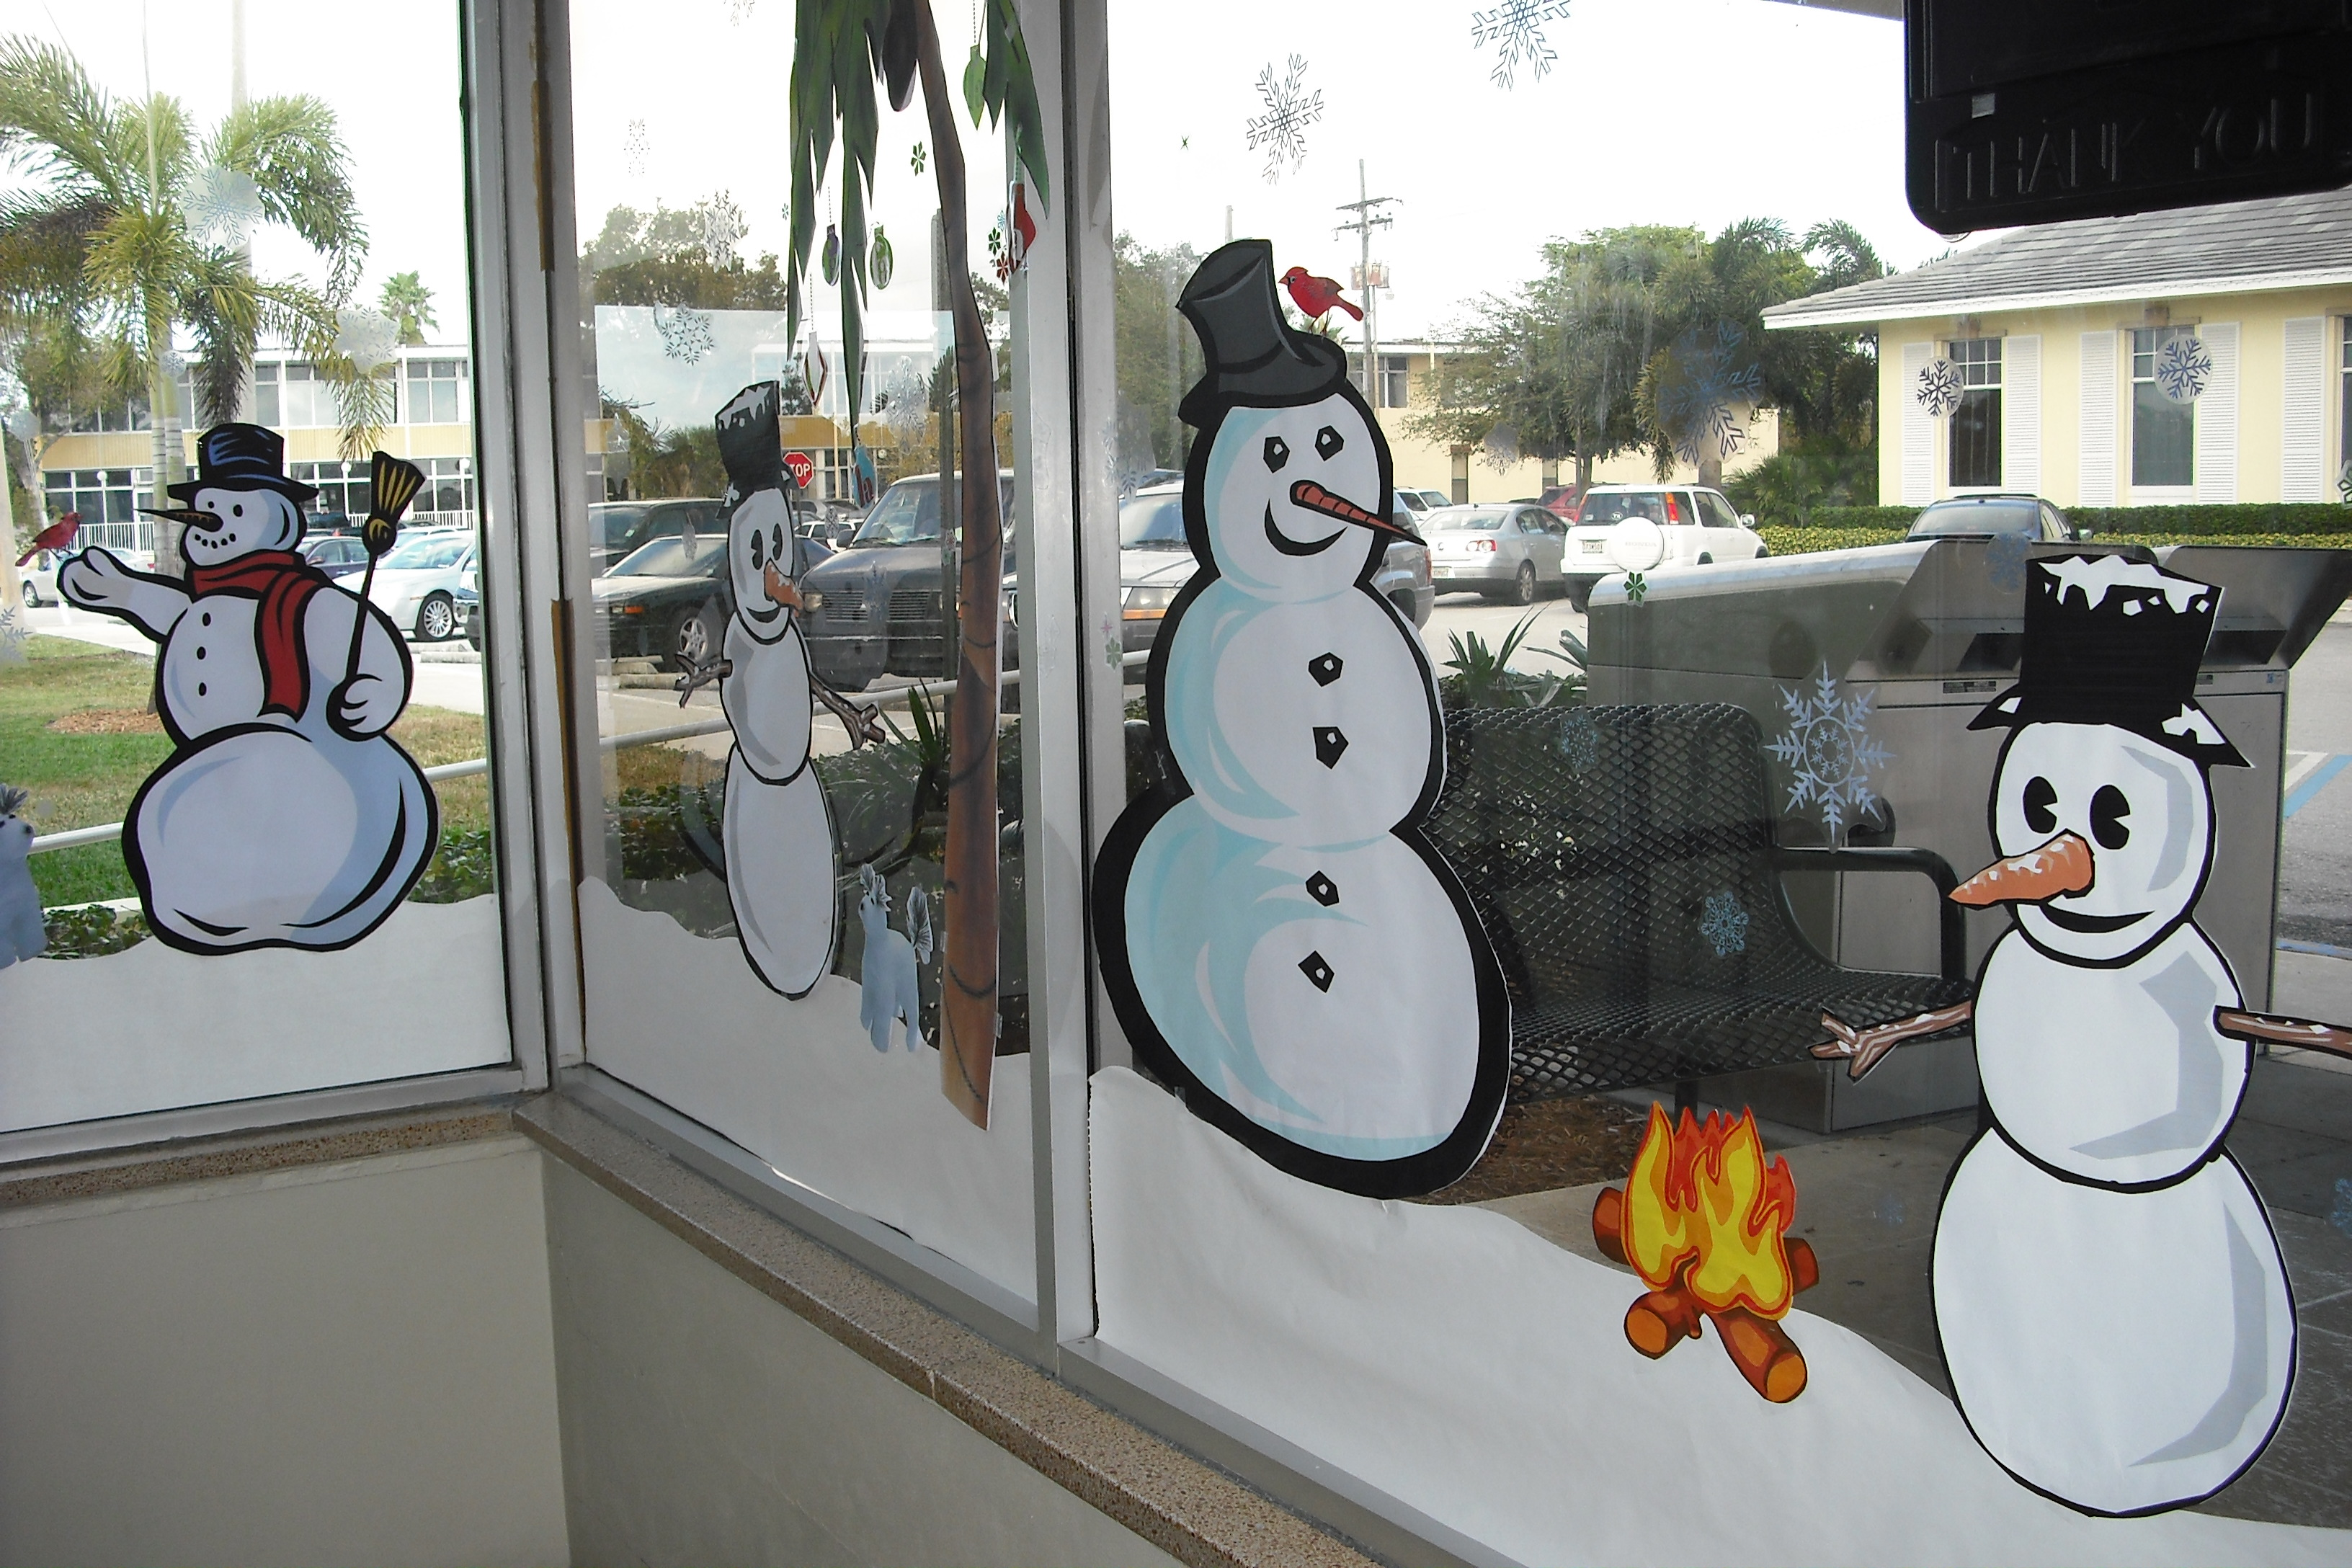 Snowmen and winter themes decorate the windows of the library